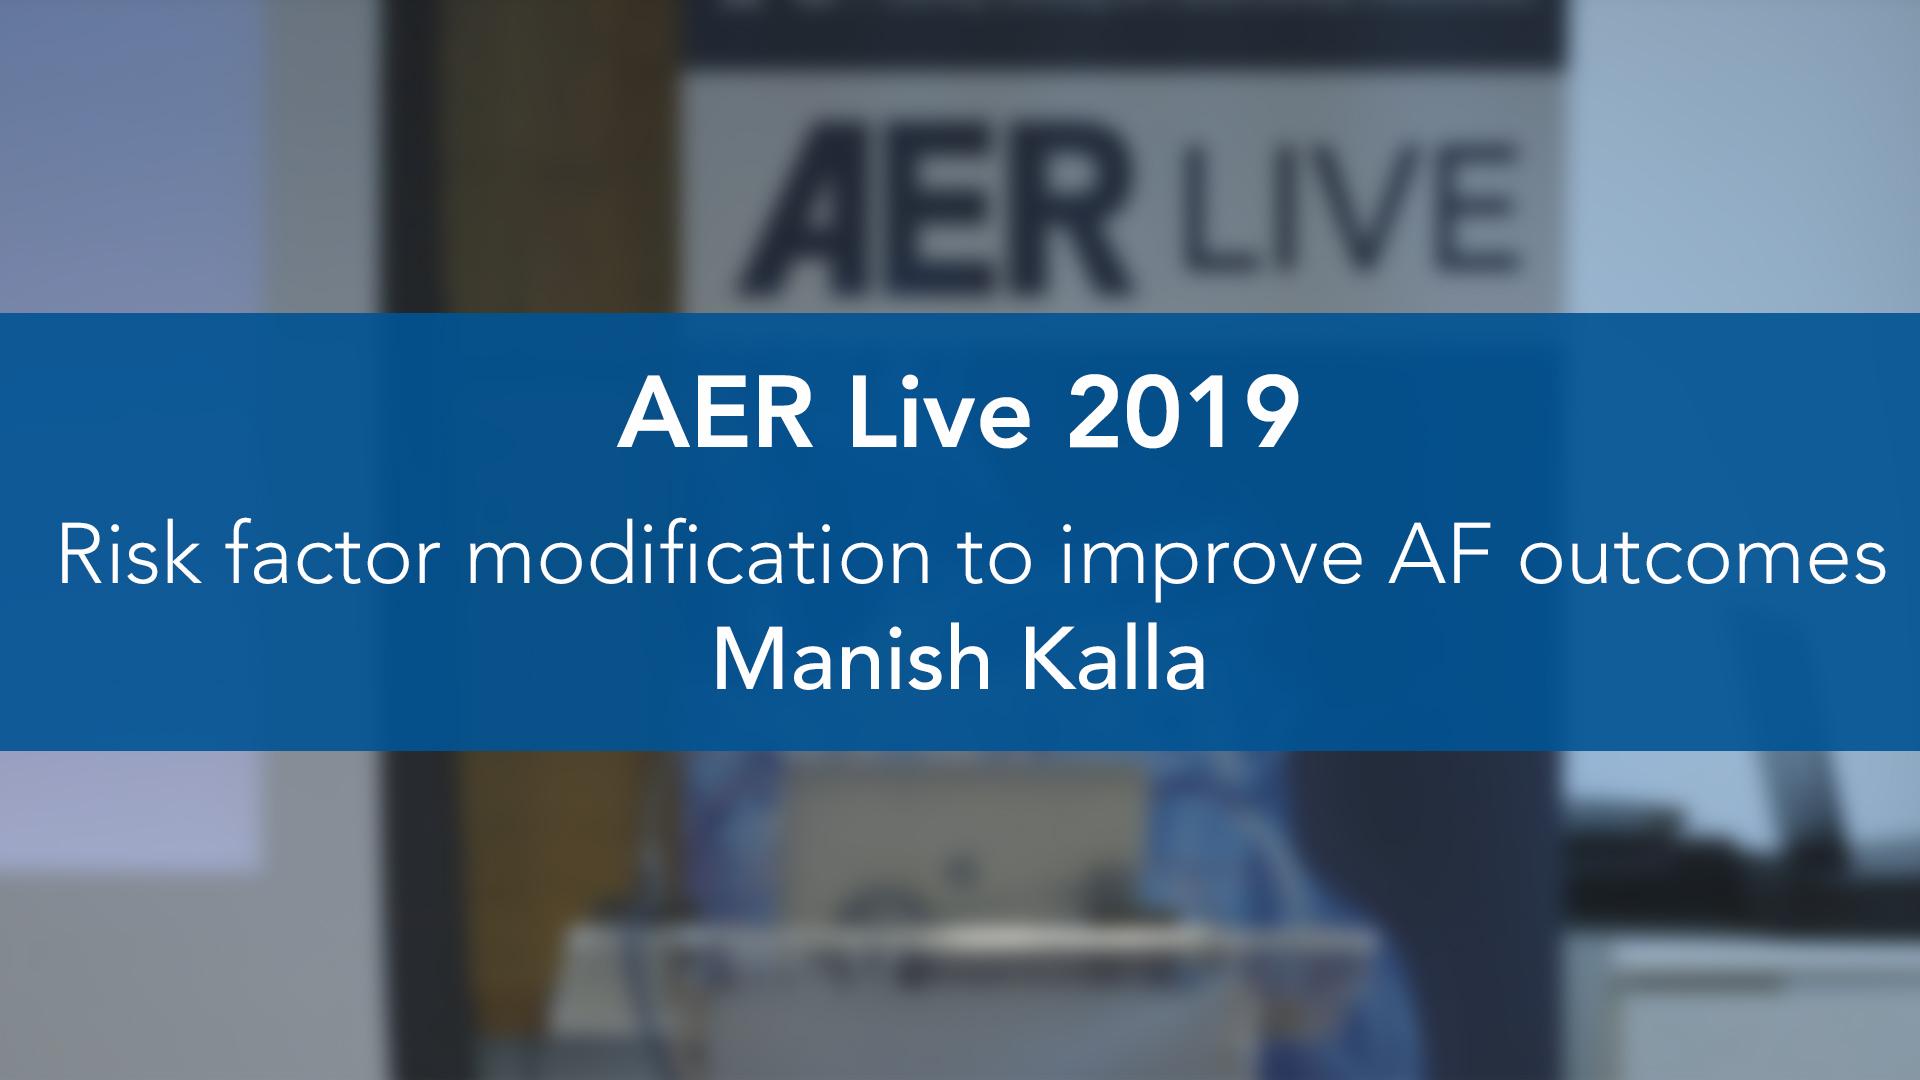 AER: LIVE 2019: Risk factor modification to improve AF outcomes — Dr Manish Kalla